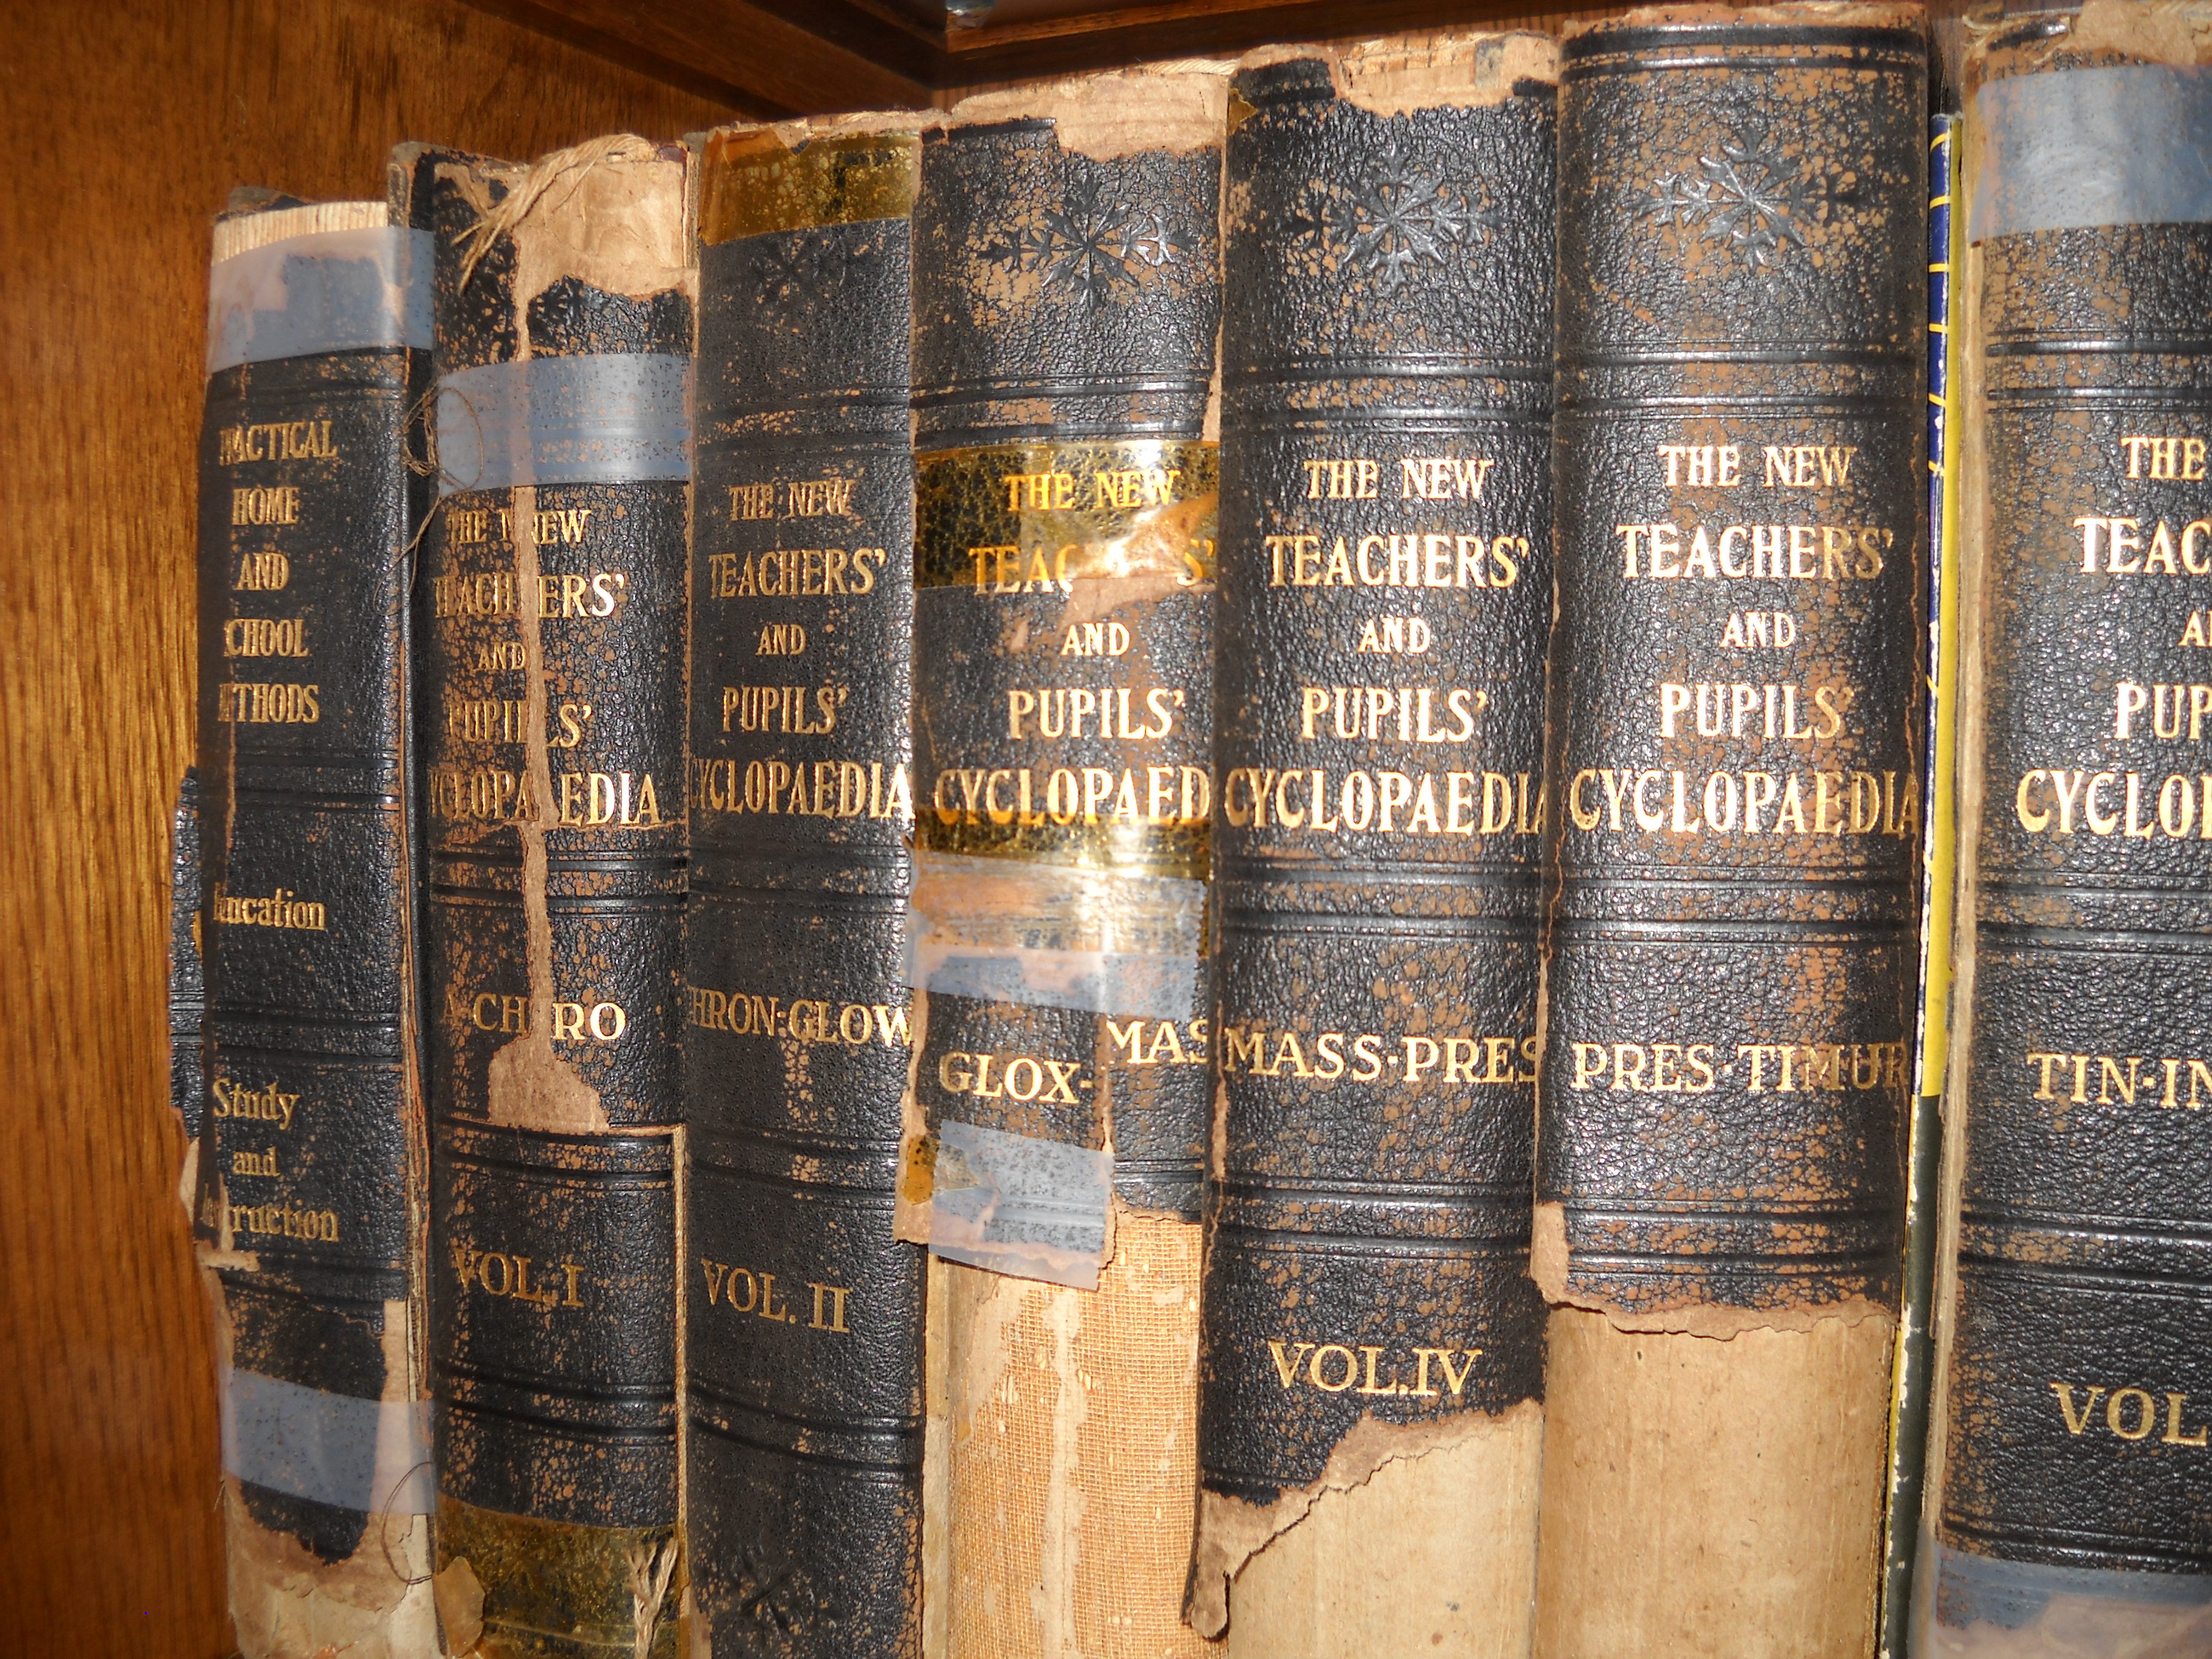 Books set of the New Teachers and Pupils Cyclopaedia 1916 produced in Iowa